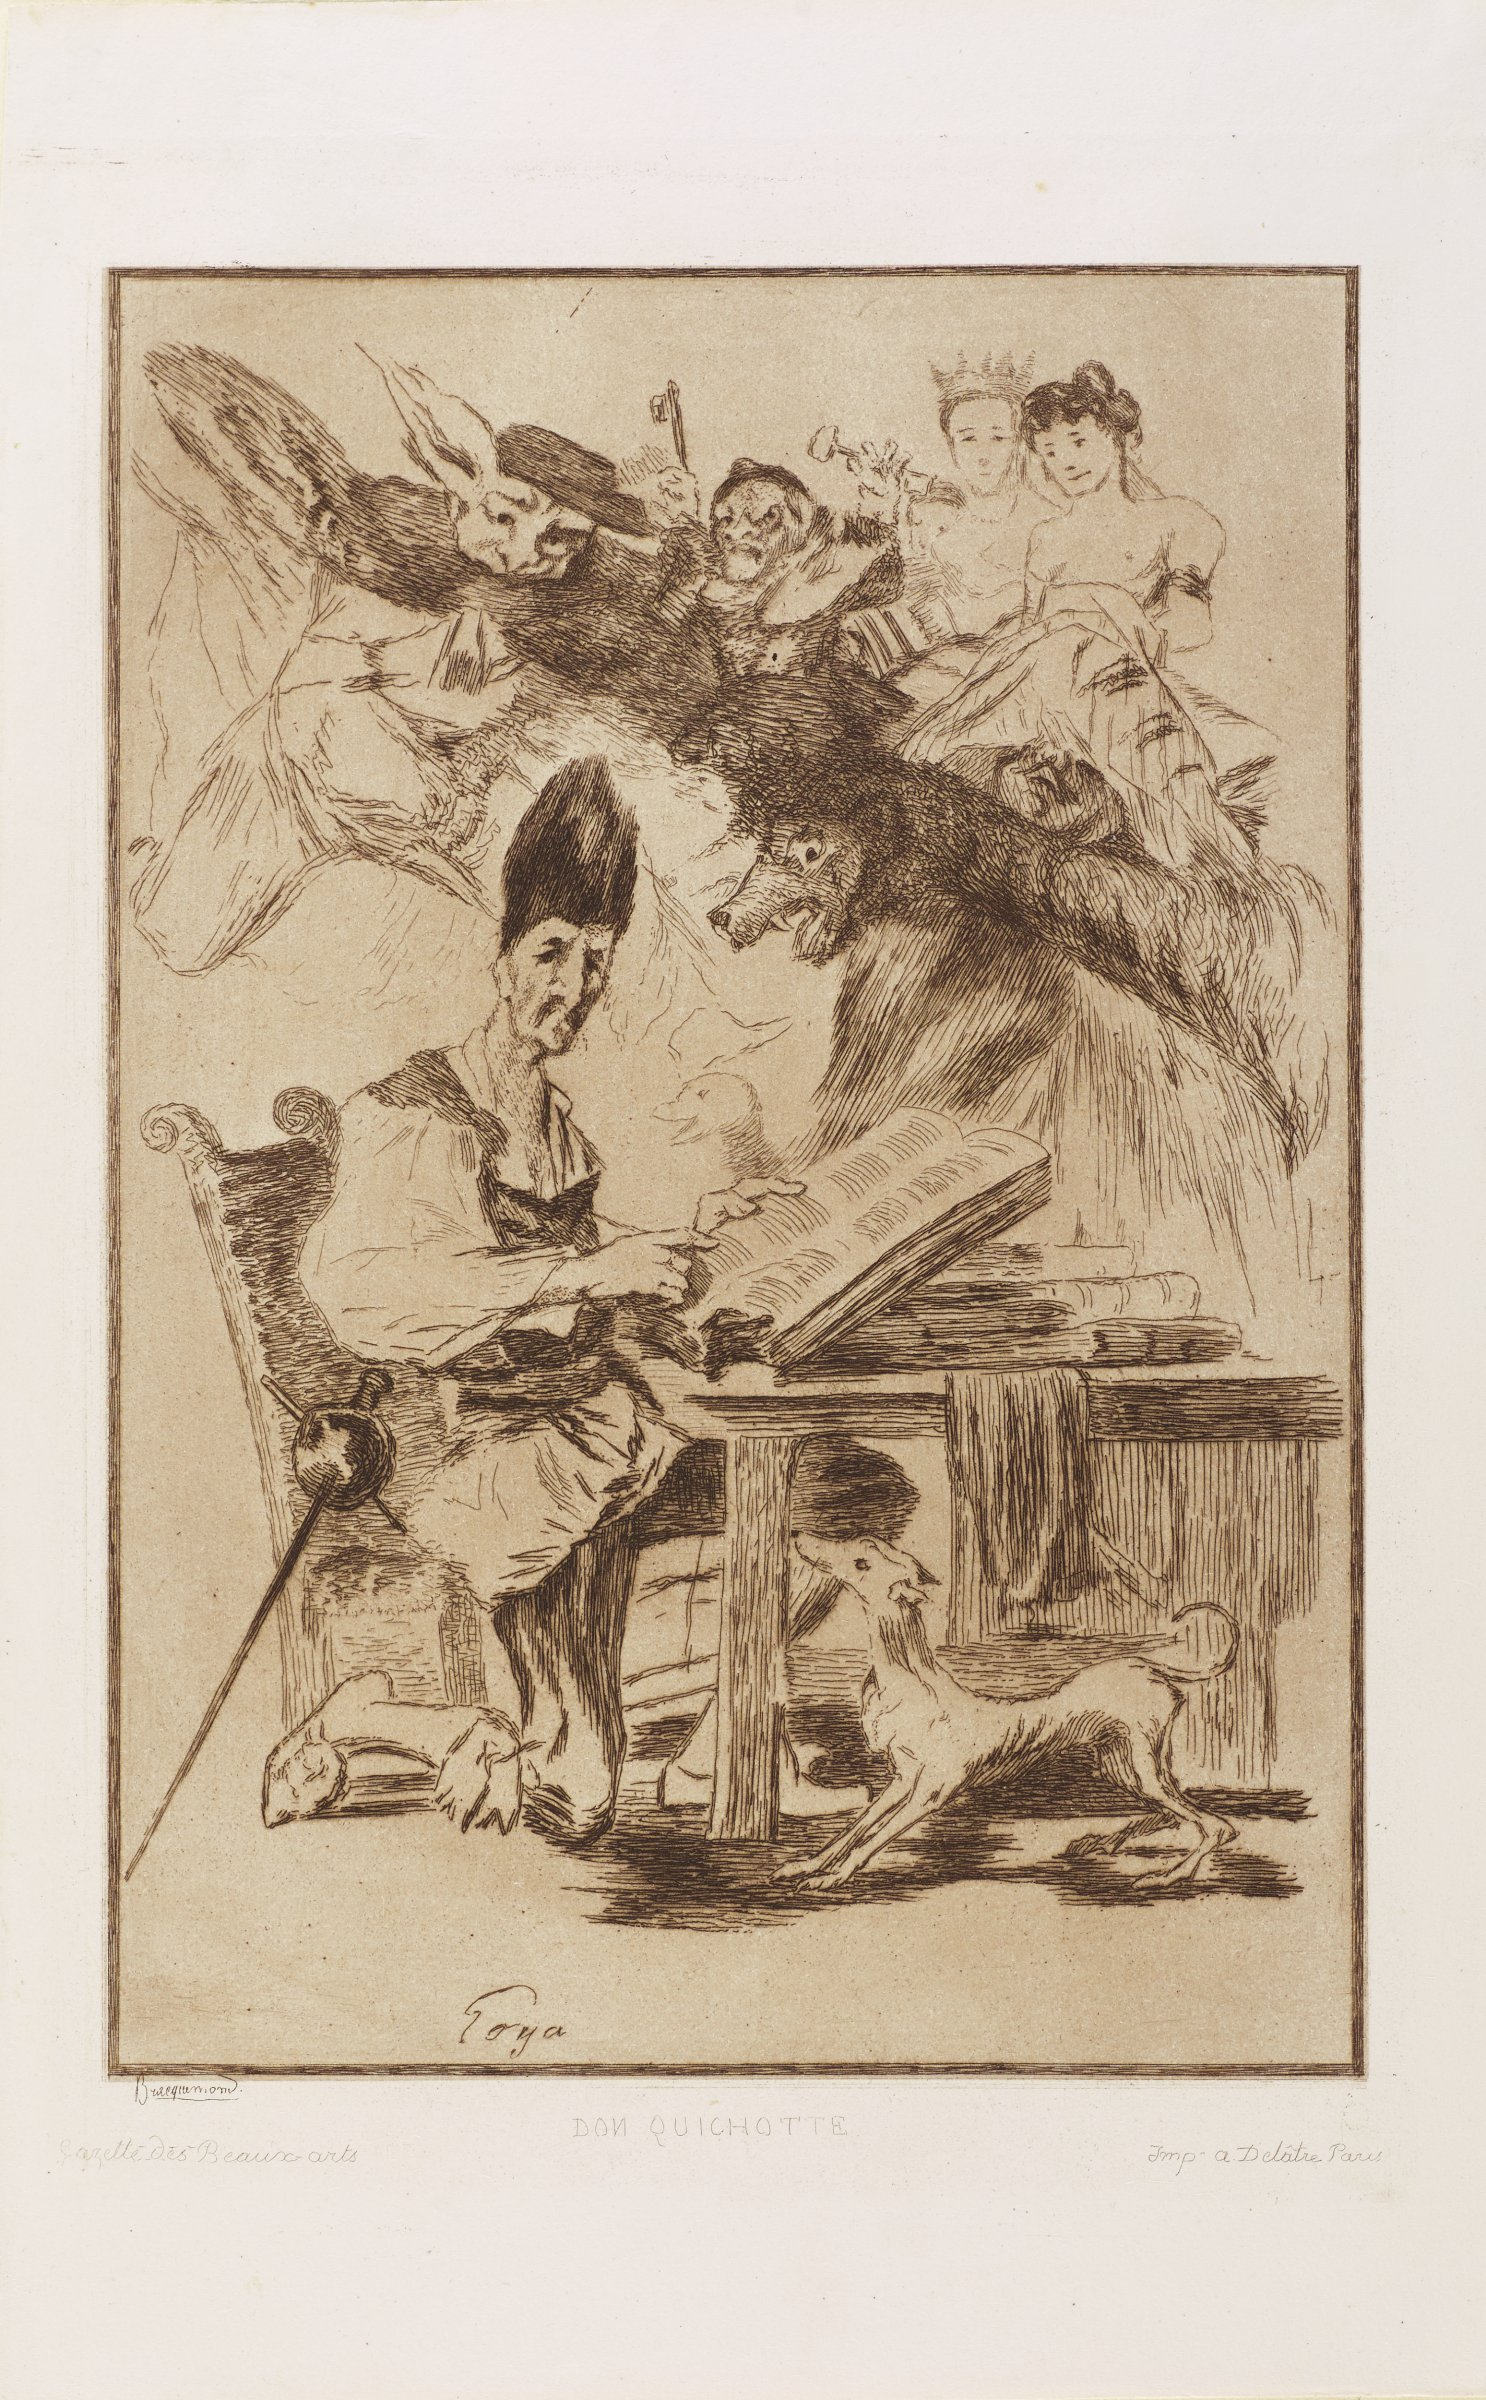 A man sits at a desk with an open book. He looks out at the viewer and points to a passage in the book. A small dog stands alert at his feet. Above him in the background, a swirl of figures resides including grotesque figures, animals, and humans.